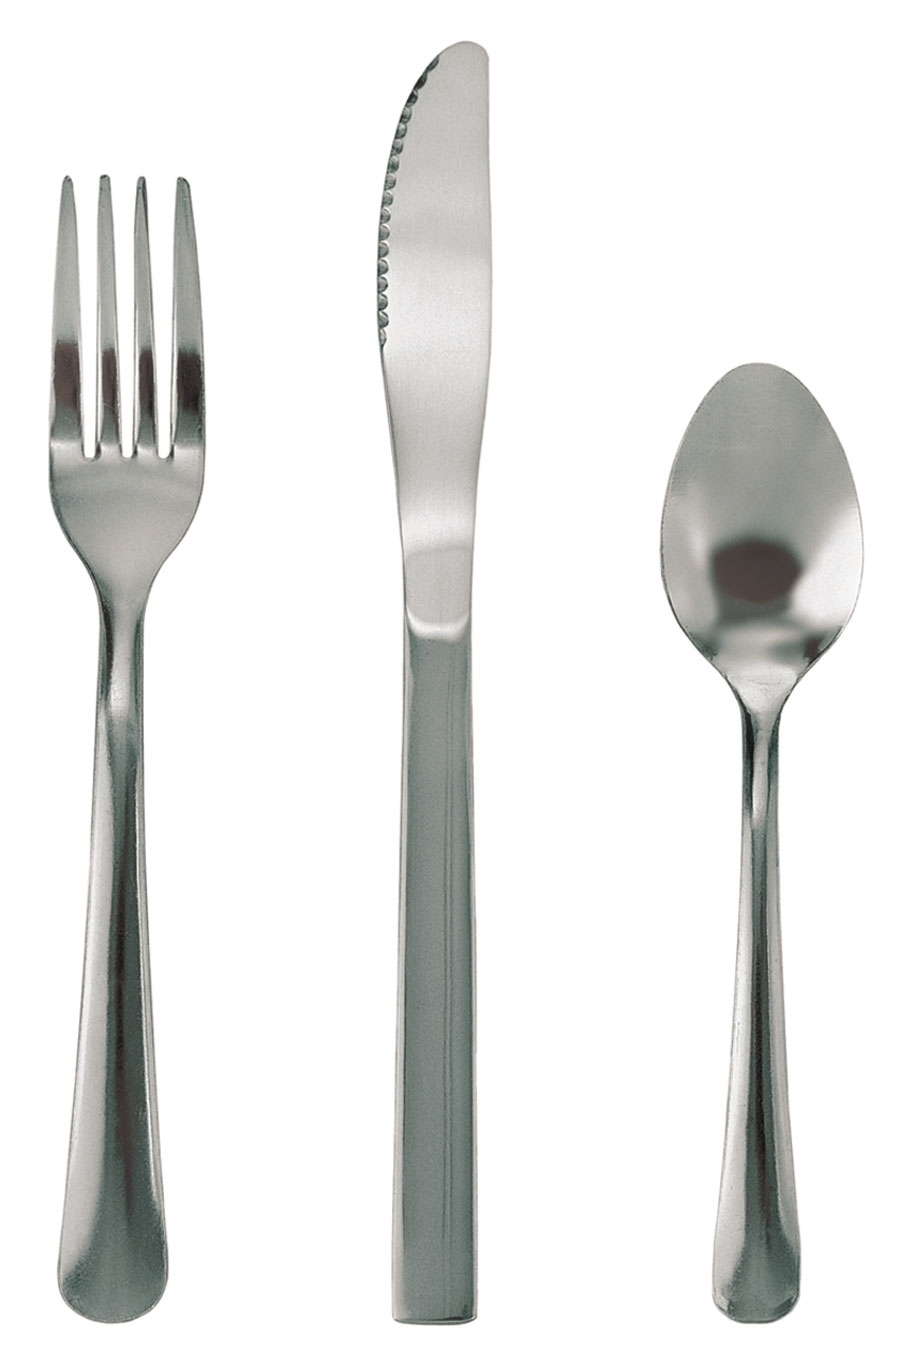 WM-32B Update International - Bouillon Spoon, 18/0 stainless steel, medium weight, Windsor